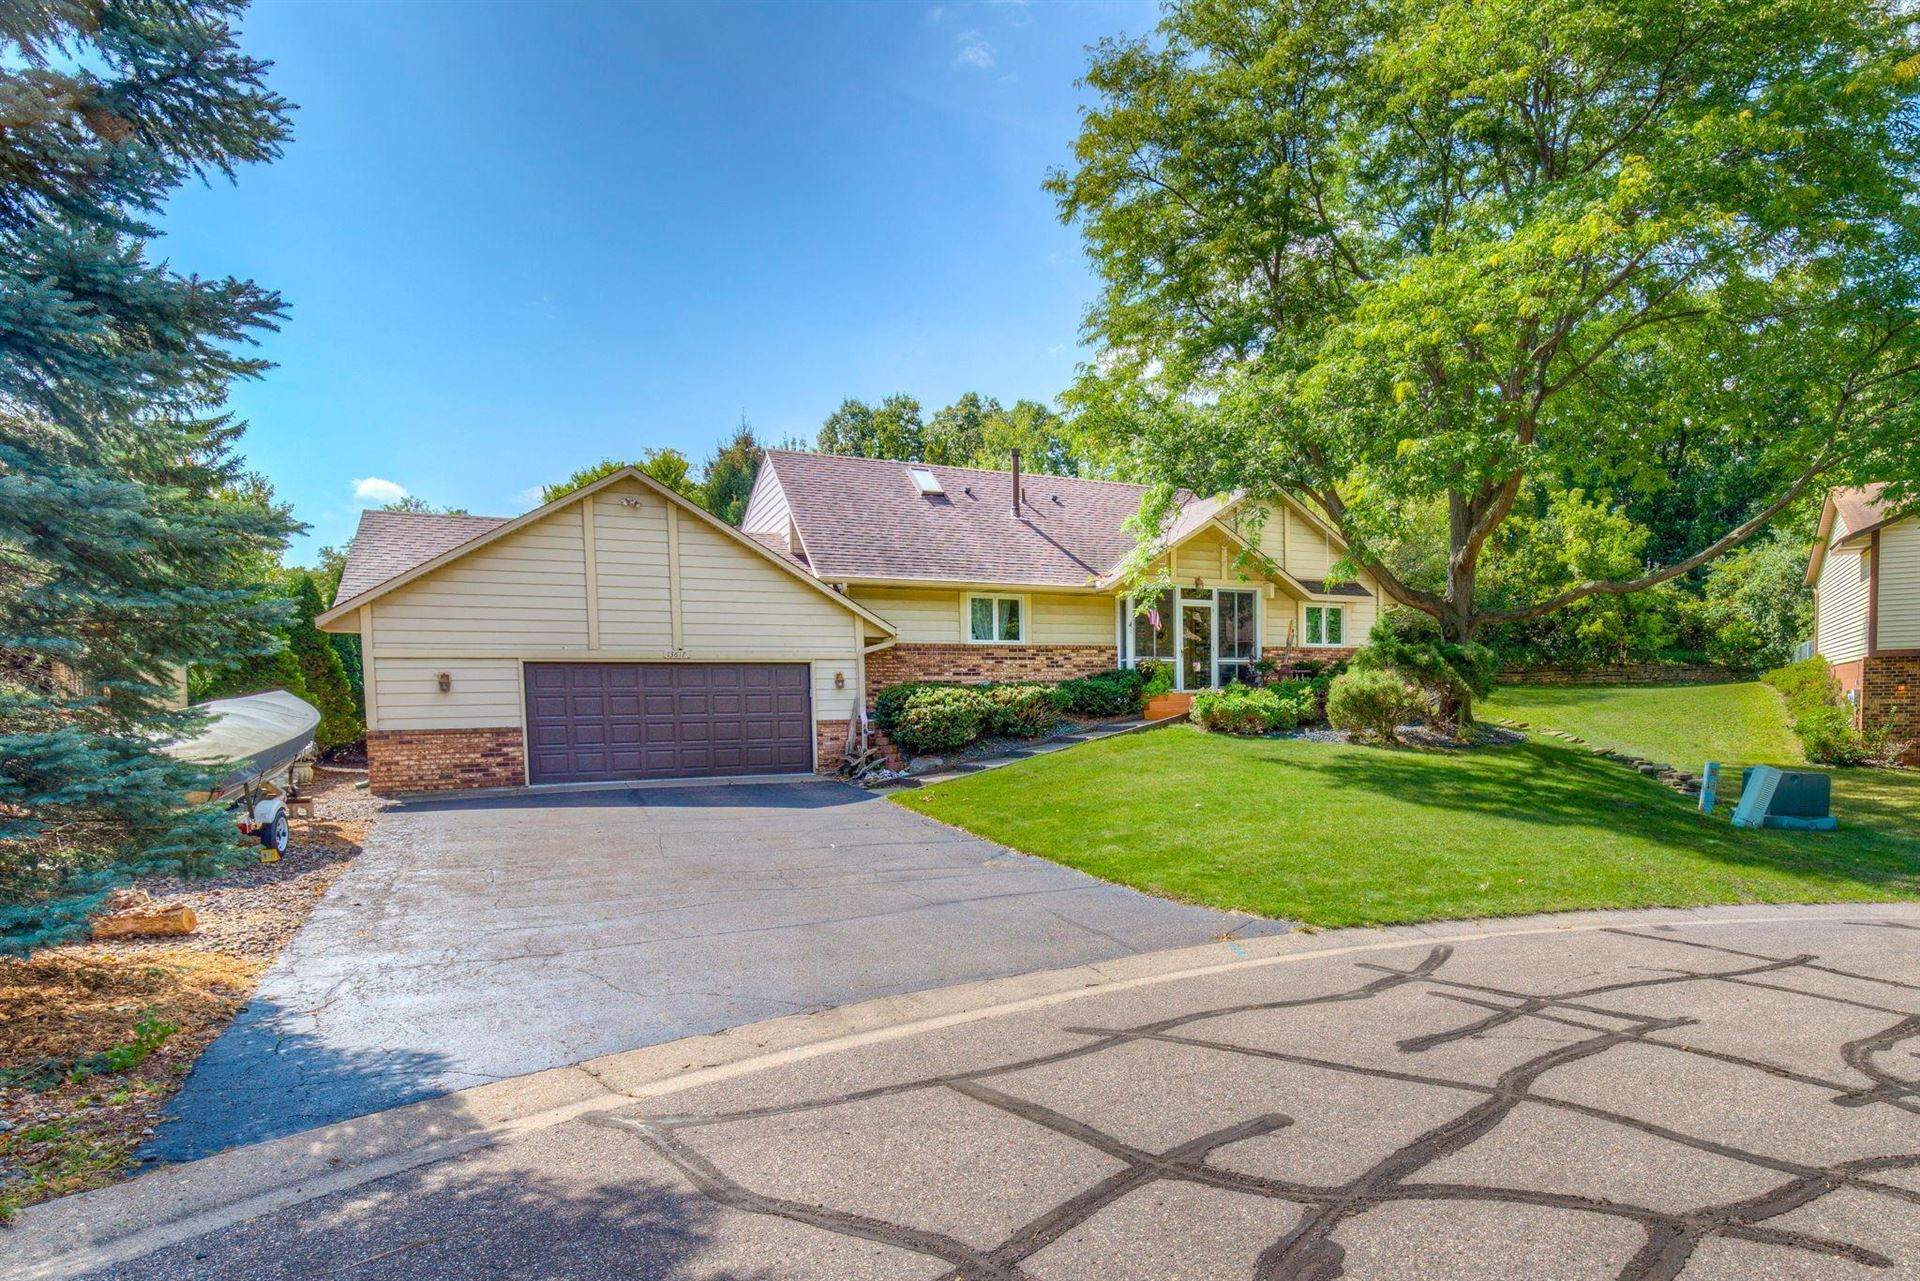 Photo of 13617 Harwell Court, Apple Valley, MN 55124 (MLS # 5741669)